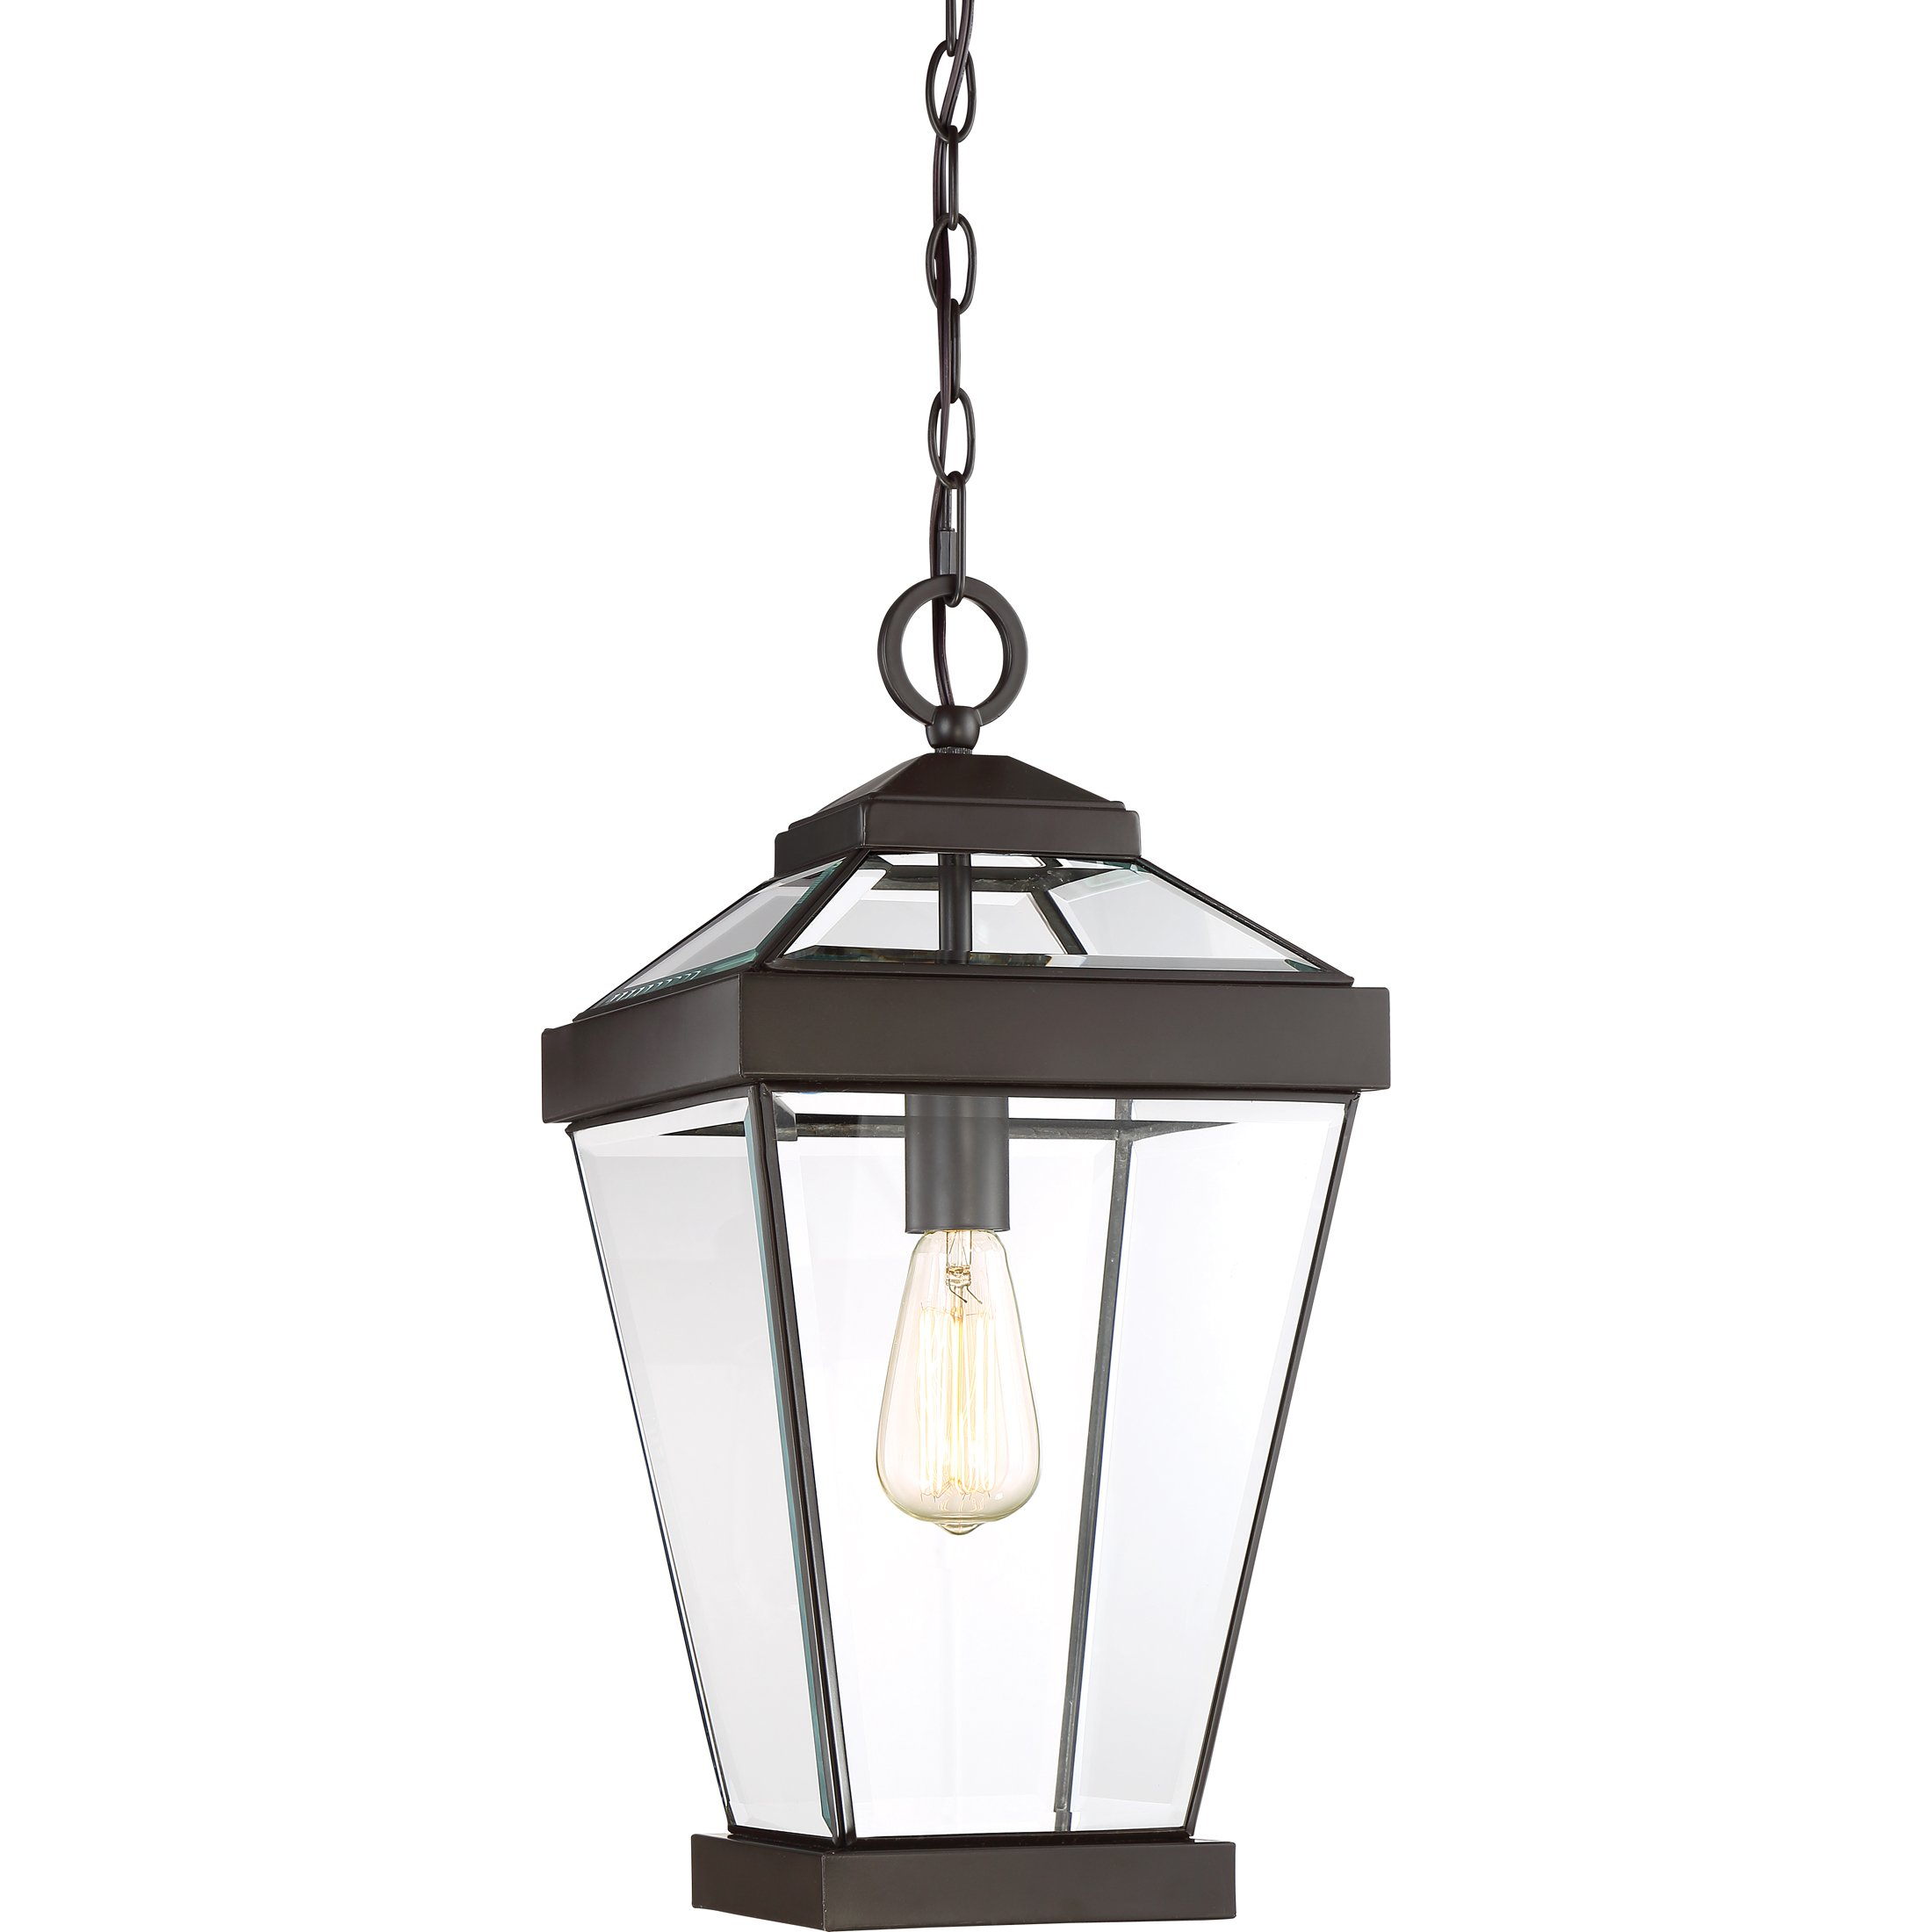 Quoizel One Light Outdoor Hanging Lantern RAV1910WT, Large, Western Bronze by Quoizel